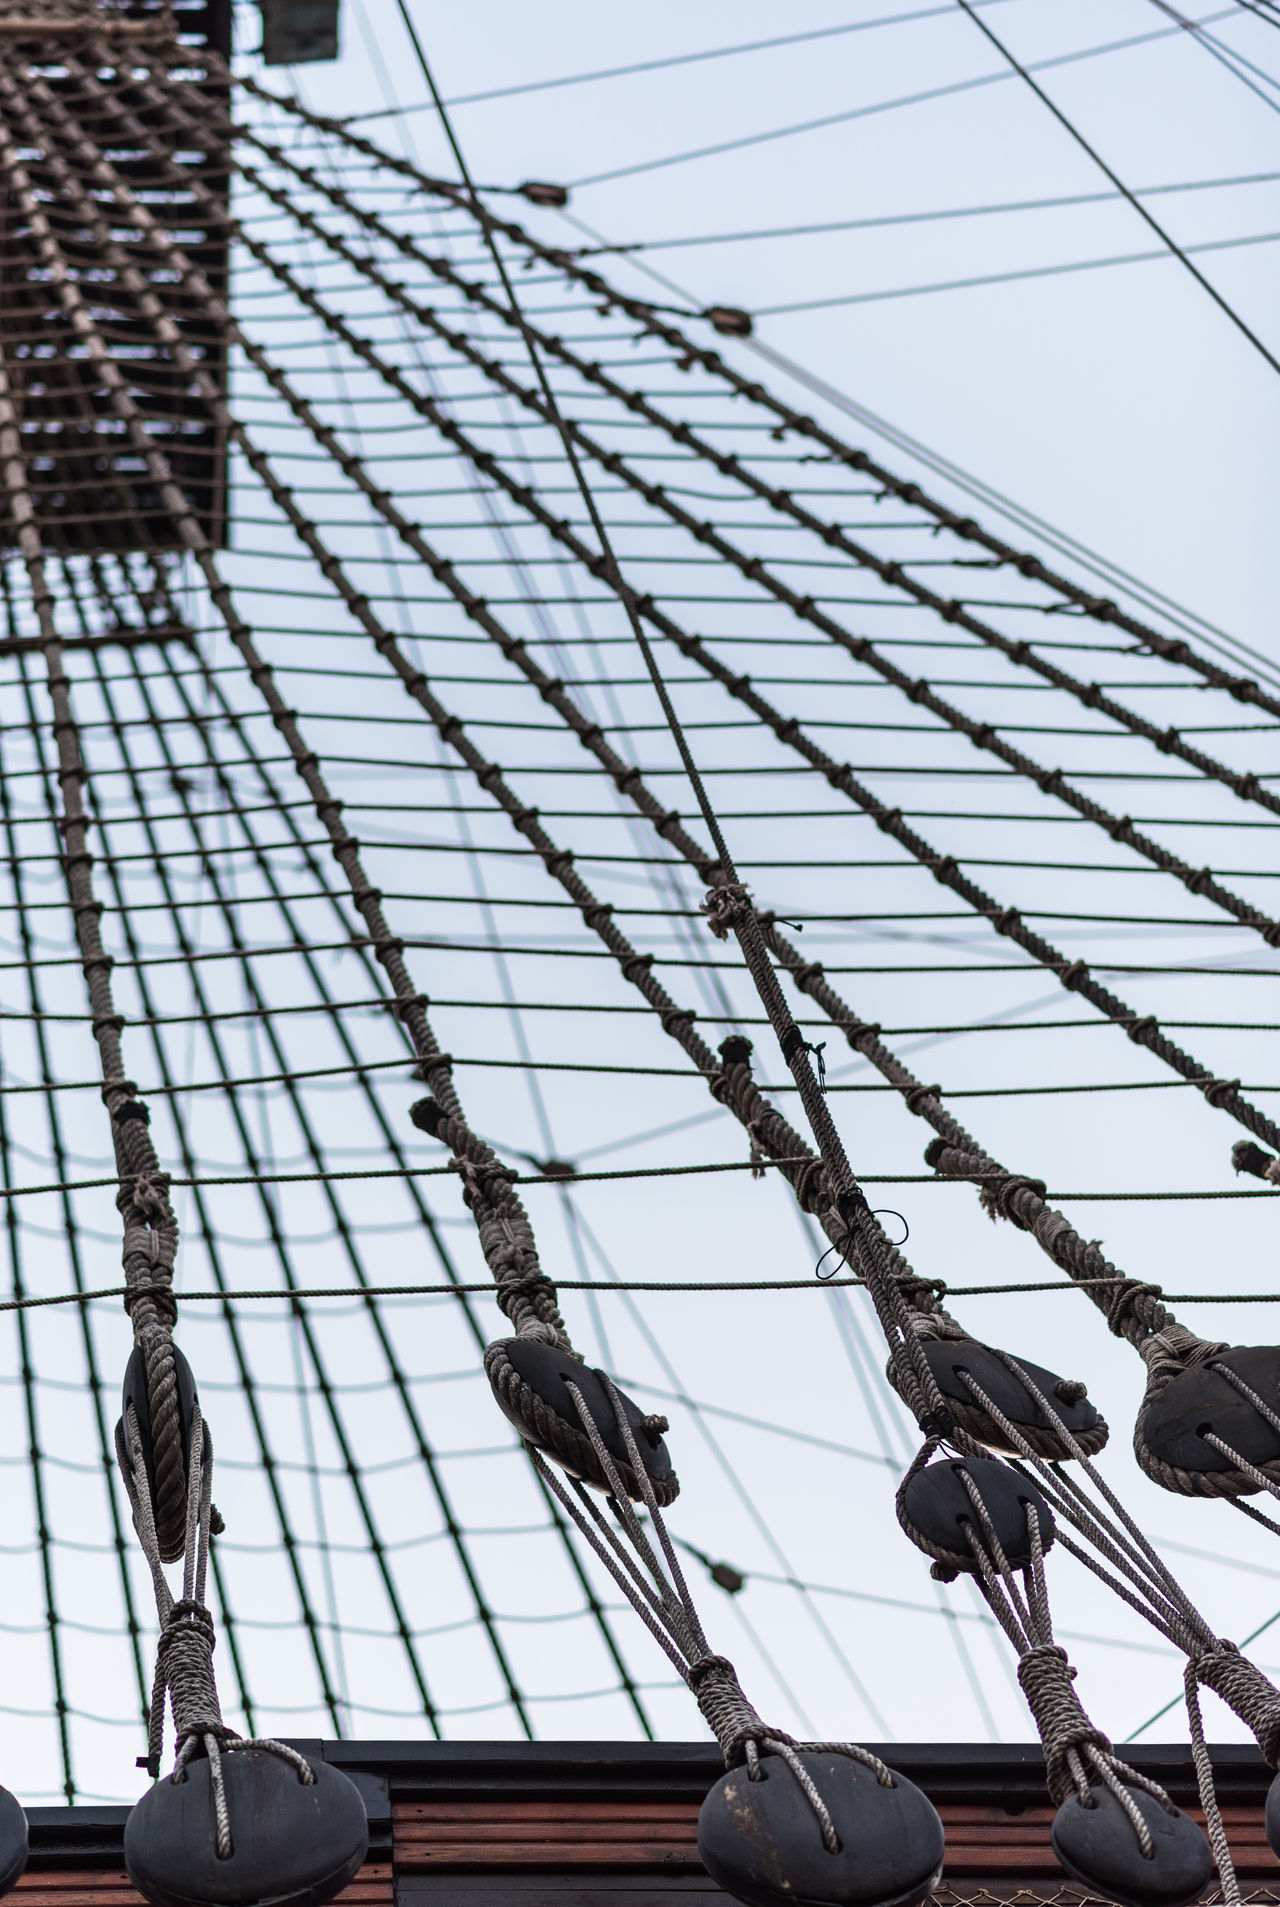 Ship shrouds Cable Closeup Day Detail Fragment Frigate Galleon Marine Moored Nautical Vessel Nobody Outdoors Part Of Pirate Ship Rigging Rope Ship Shrouds Sky Tackles Tighten Transportation Vintage